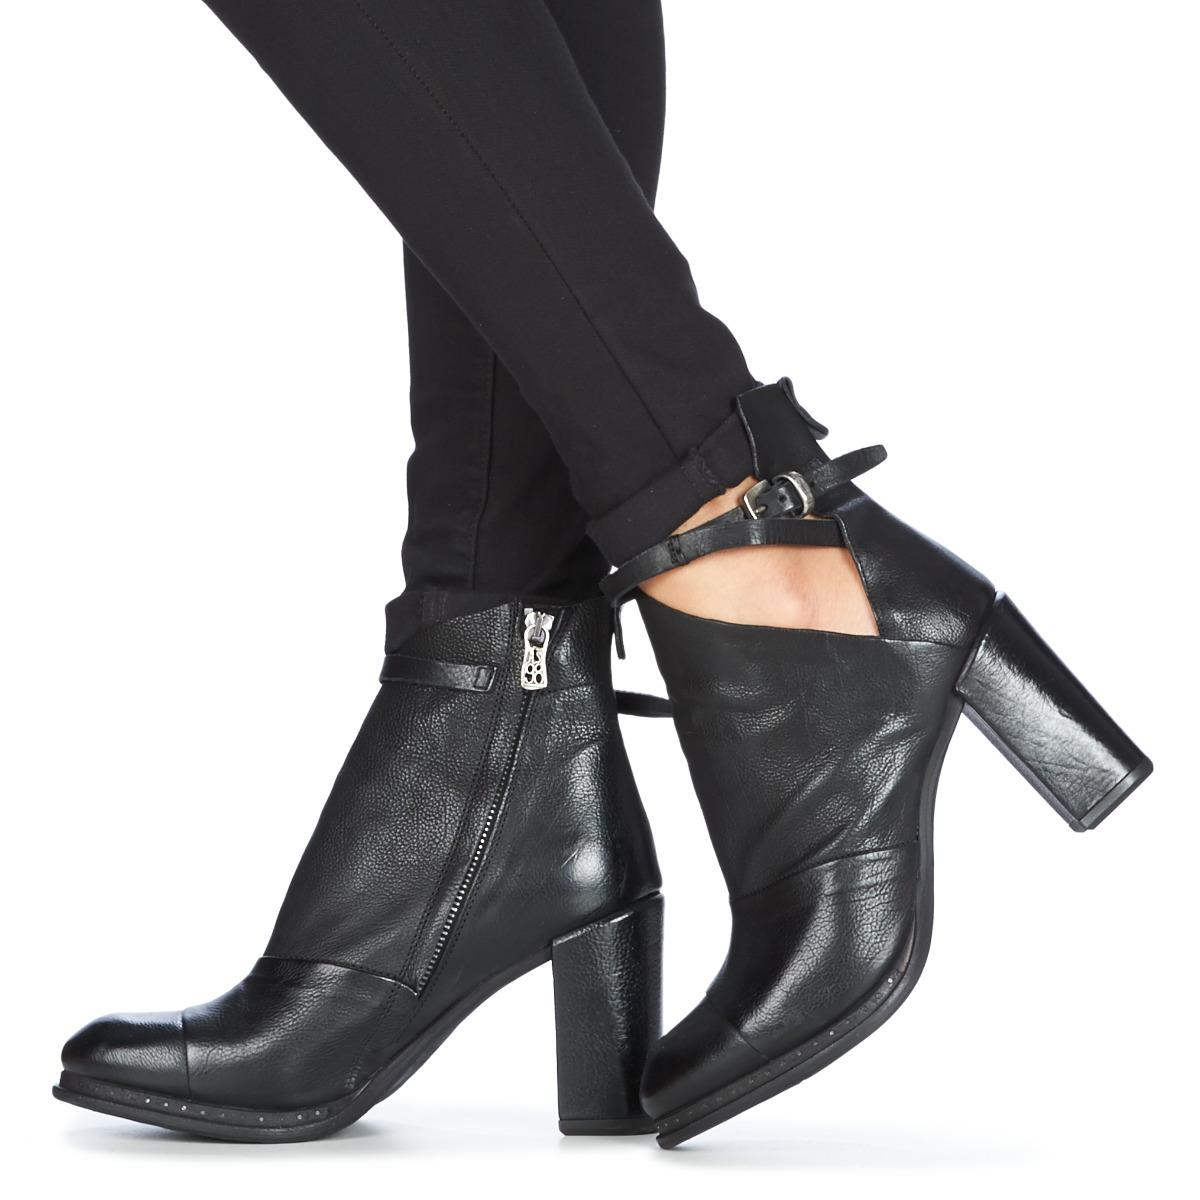 A.s.98 Petian Low Ankle Boots in Black